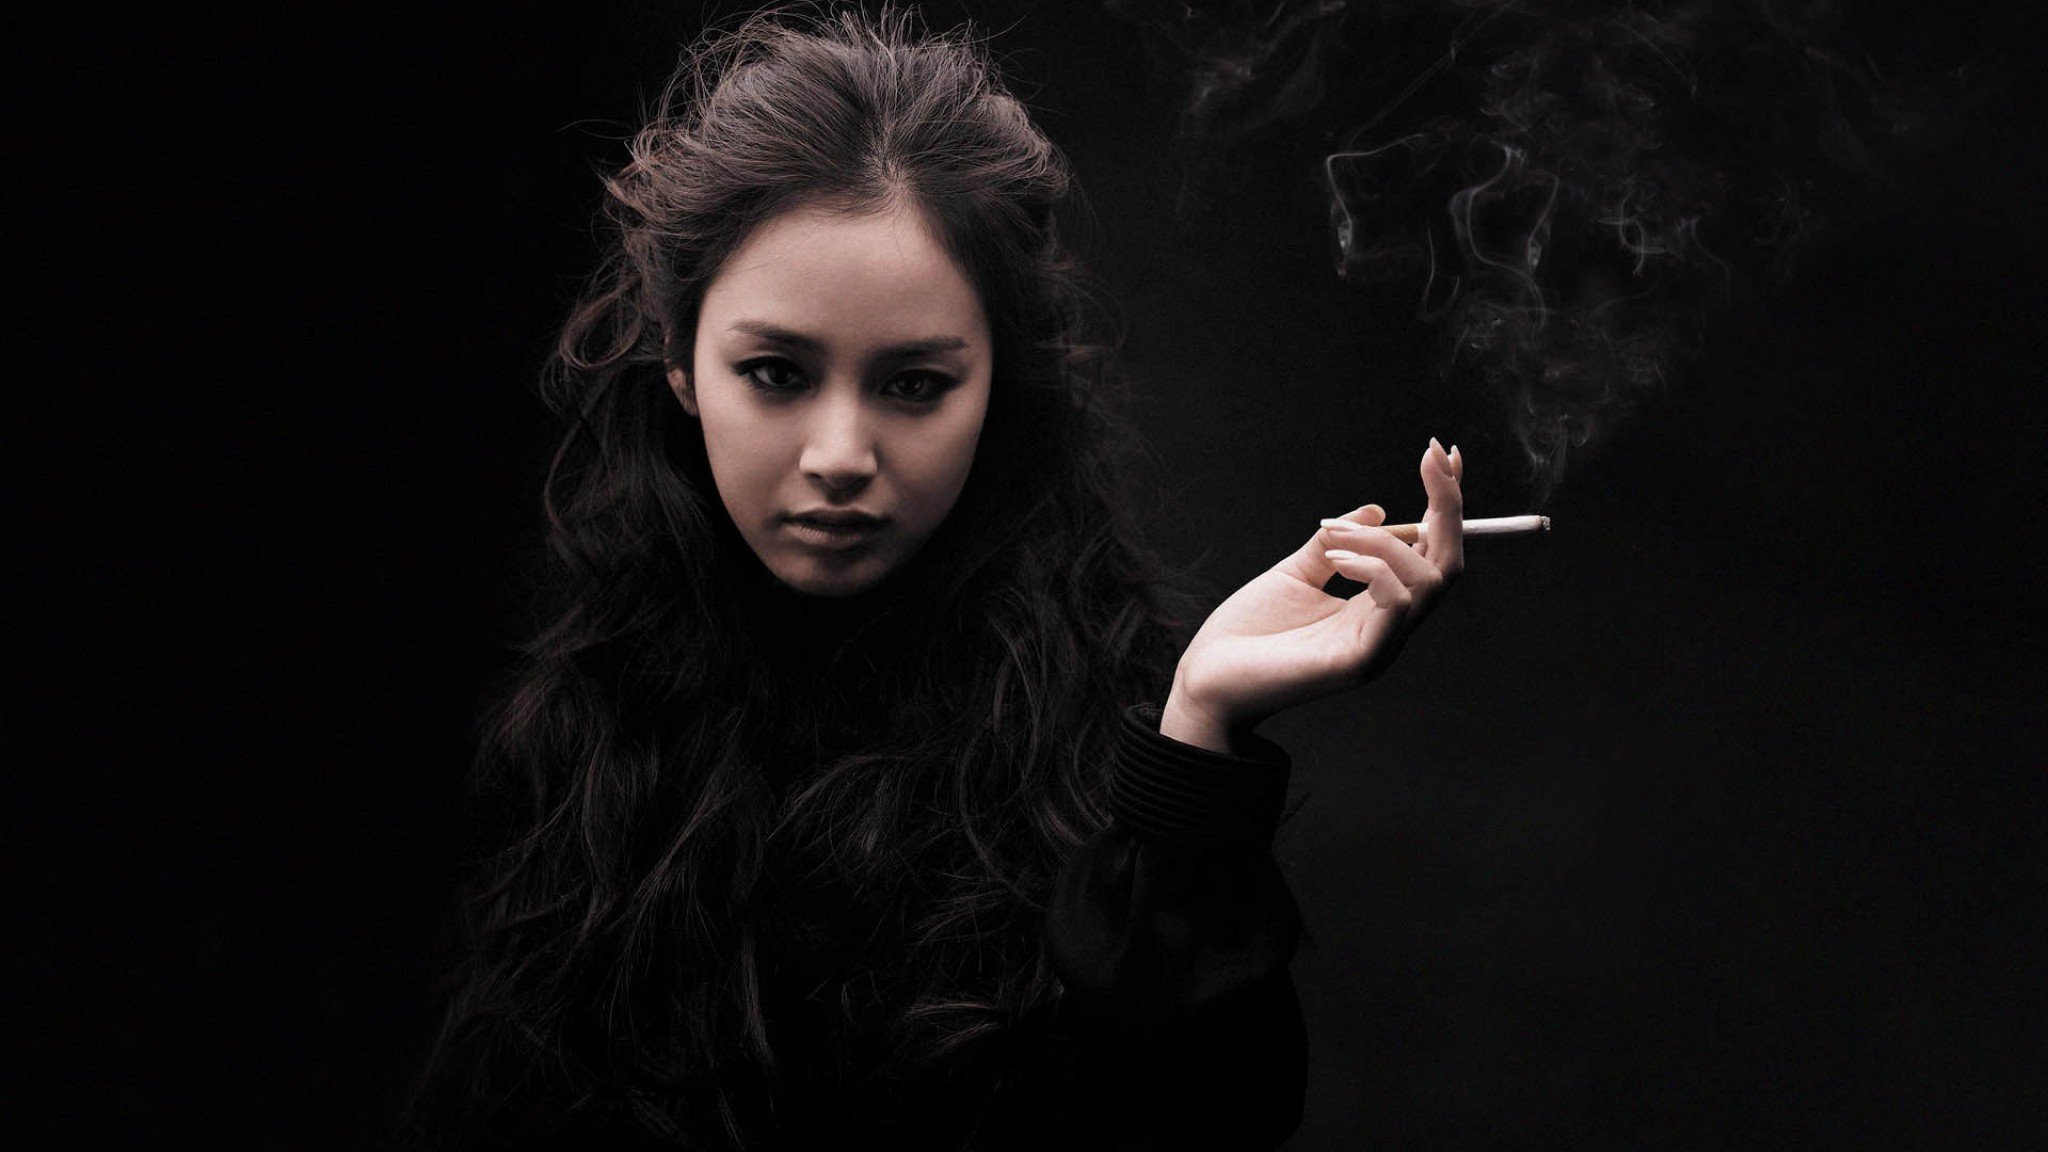 Kim Tae hee Smoking HD Wallpaper